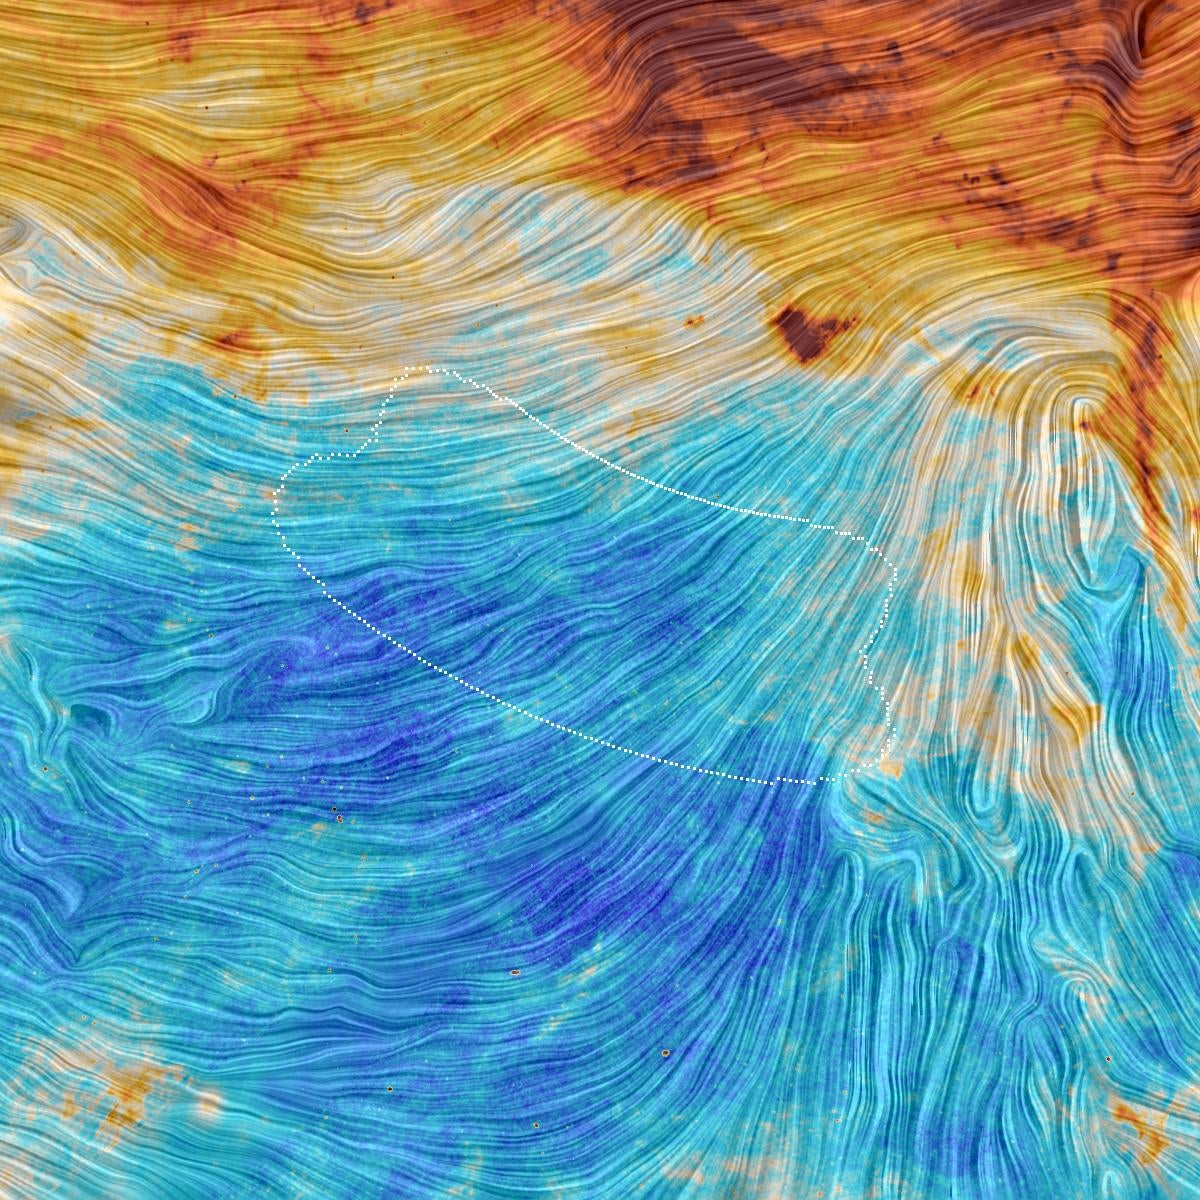 Extraordinary sky view shows orientation of our galactic magnetic field